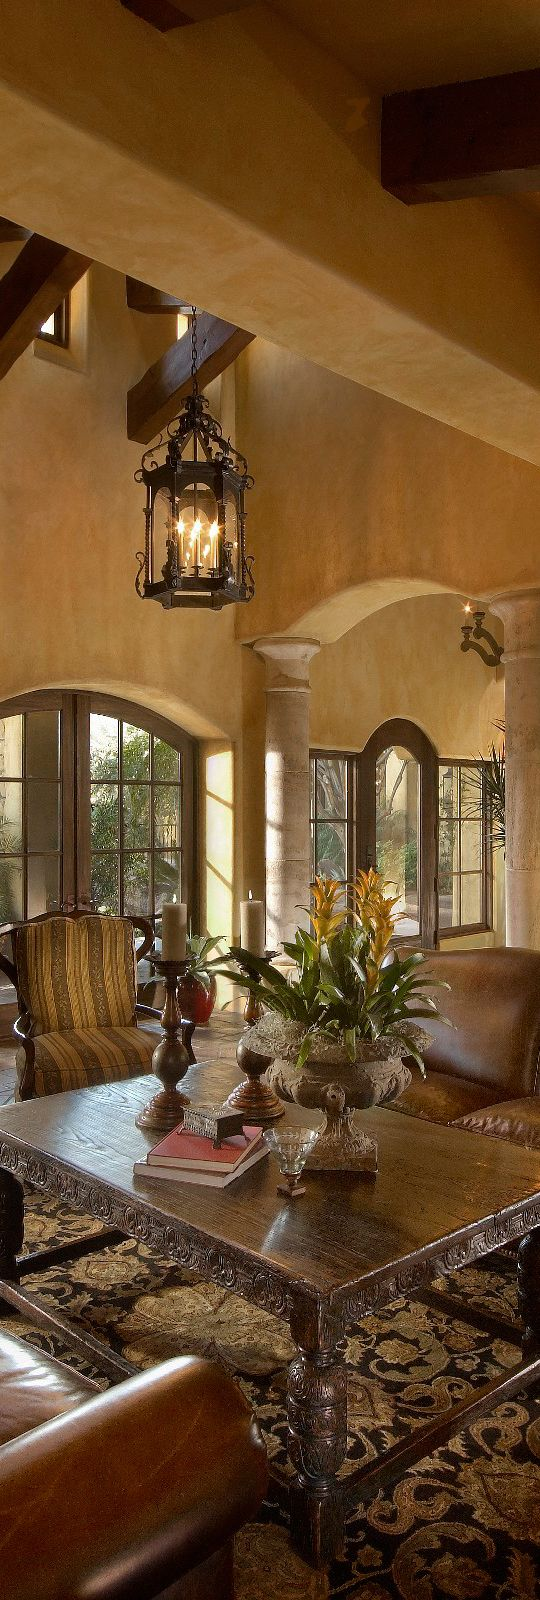 8842 best mediterranean/tuscan/old world decor 2 images on pinterest